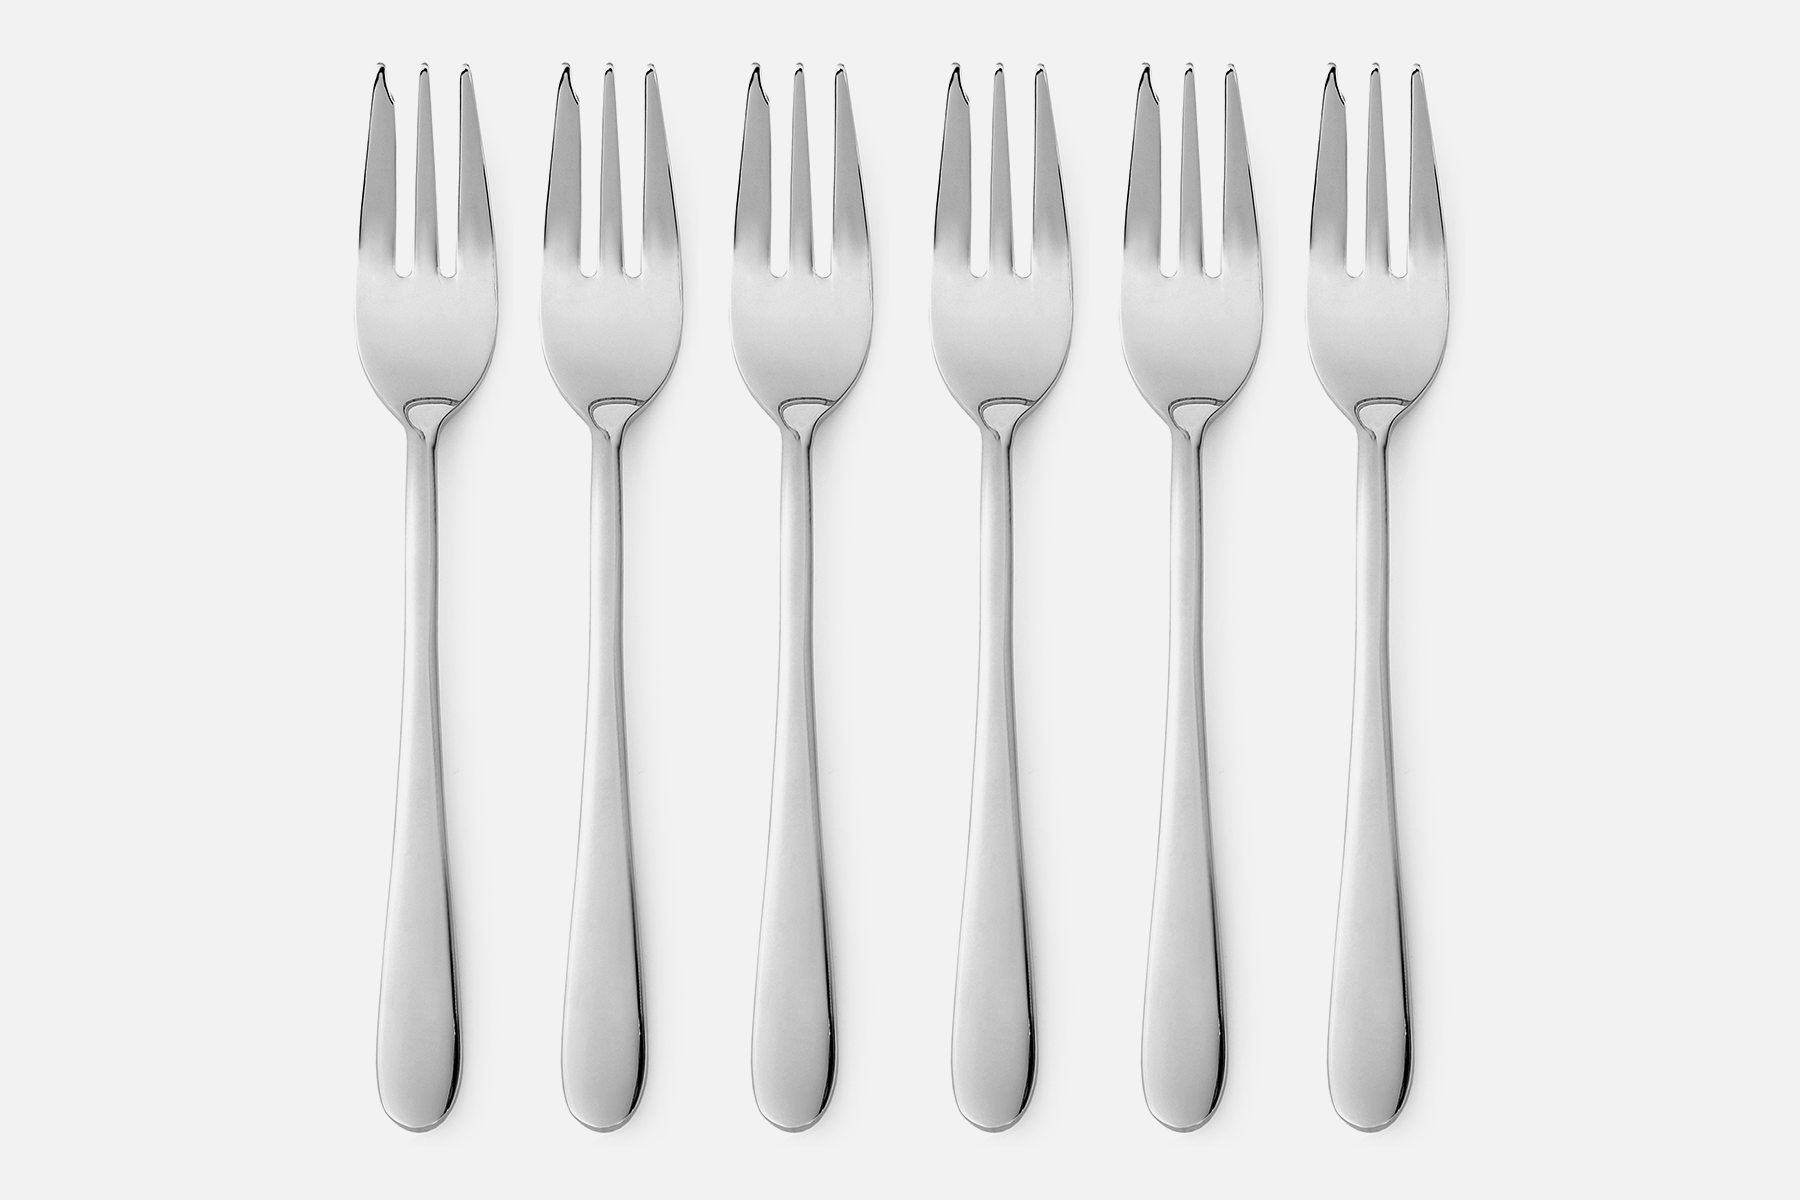 Cake fork, shiny - 6 pcsStainless steelDesign by eb design teamArt. no.: 90125